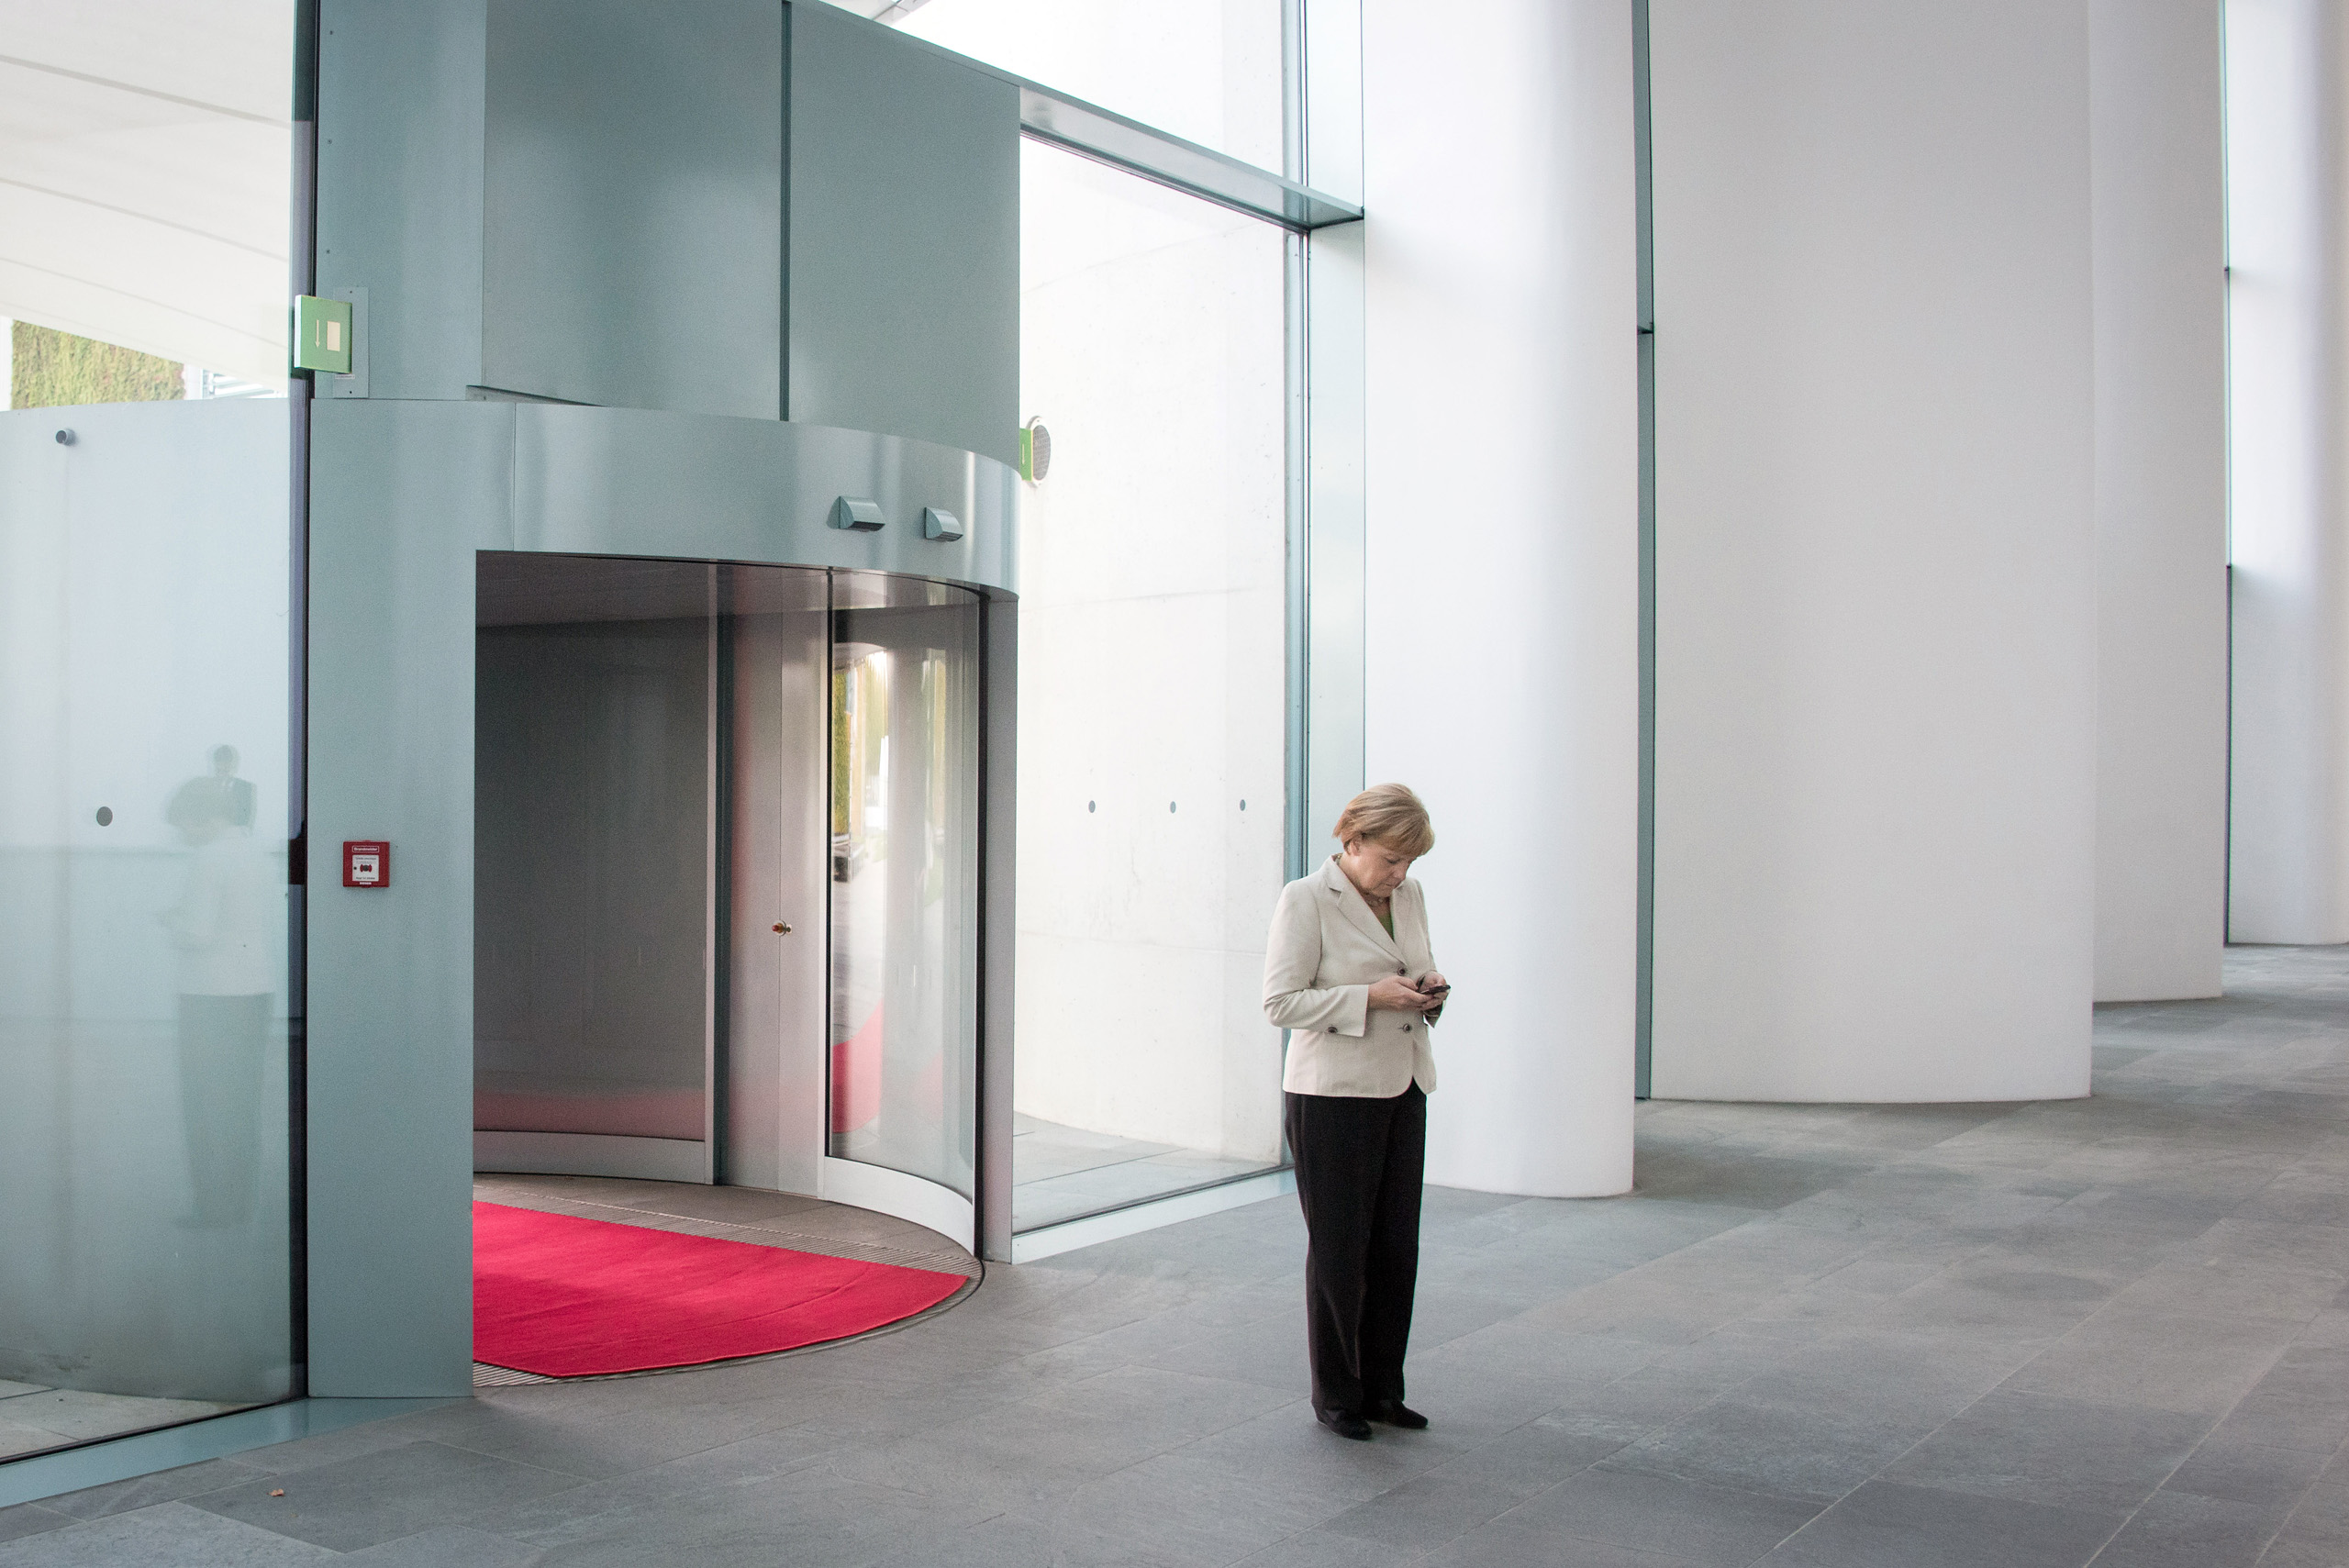 Federal Chancellor Angela Merkel checks her smartphone while waiting for the arrival of the heads of state for the Conference on Western Balkan in the Federal Chancellery in Berlin. Aug. 28, 2014.